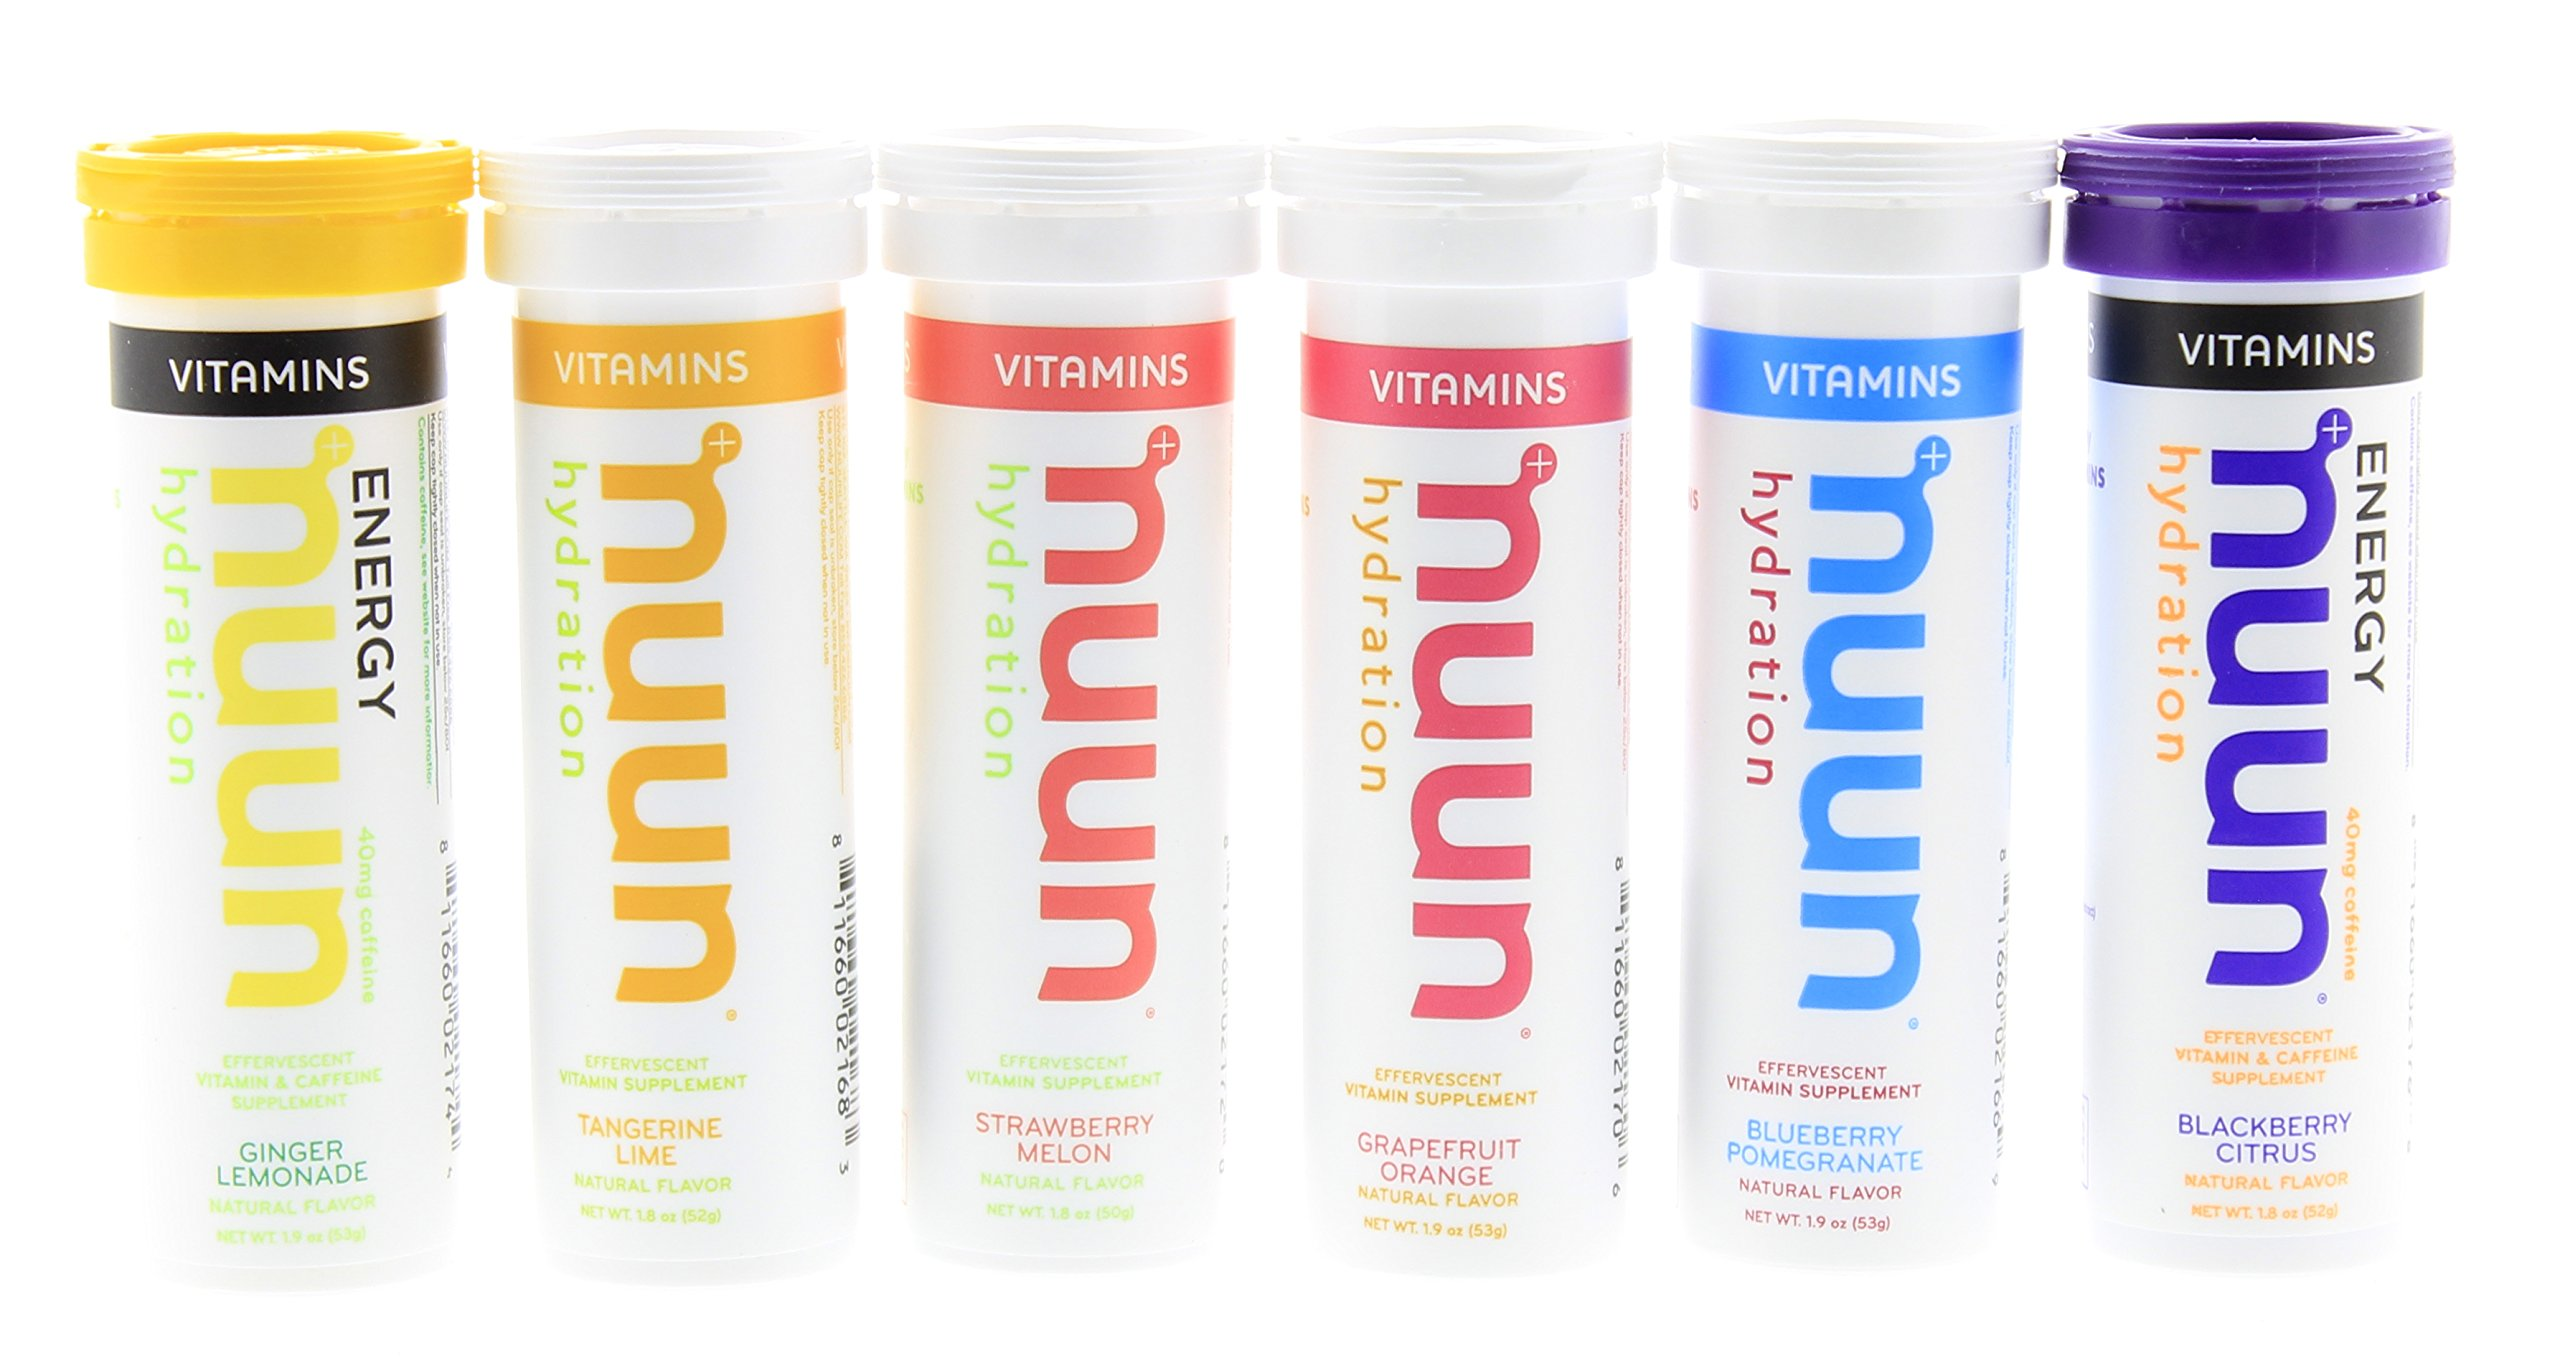 Nuun Hydration: Electrolytes + Vitamins 6-flavor Variety Pack, Contains 4 tubes of Nuun Vitamins and 2 Nuun Vitamins Energy